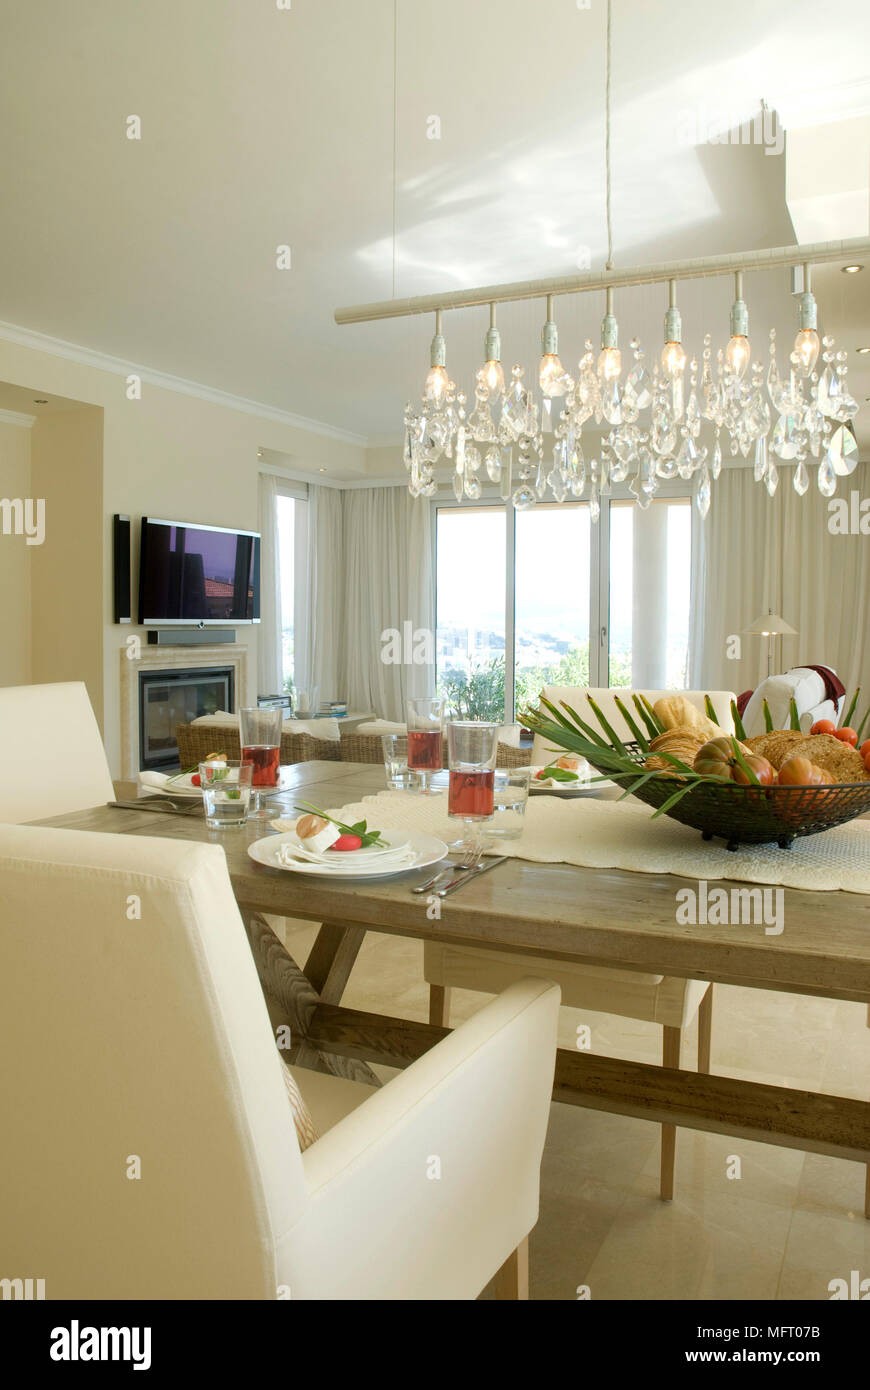 Pendant Light Above Table Set For Lunch In Modern Dining Room Stock Photo Alamy